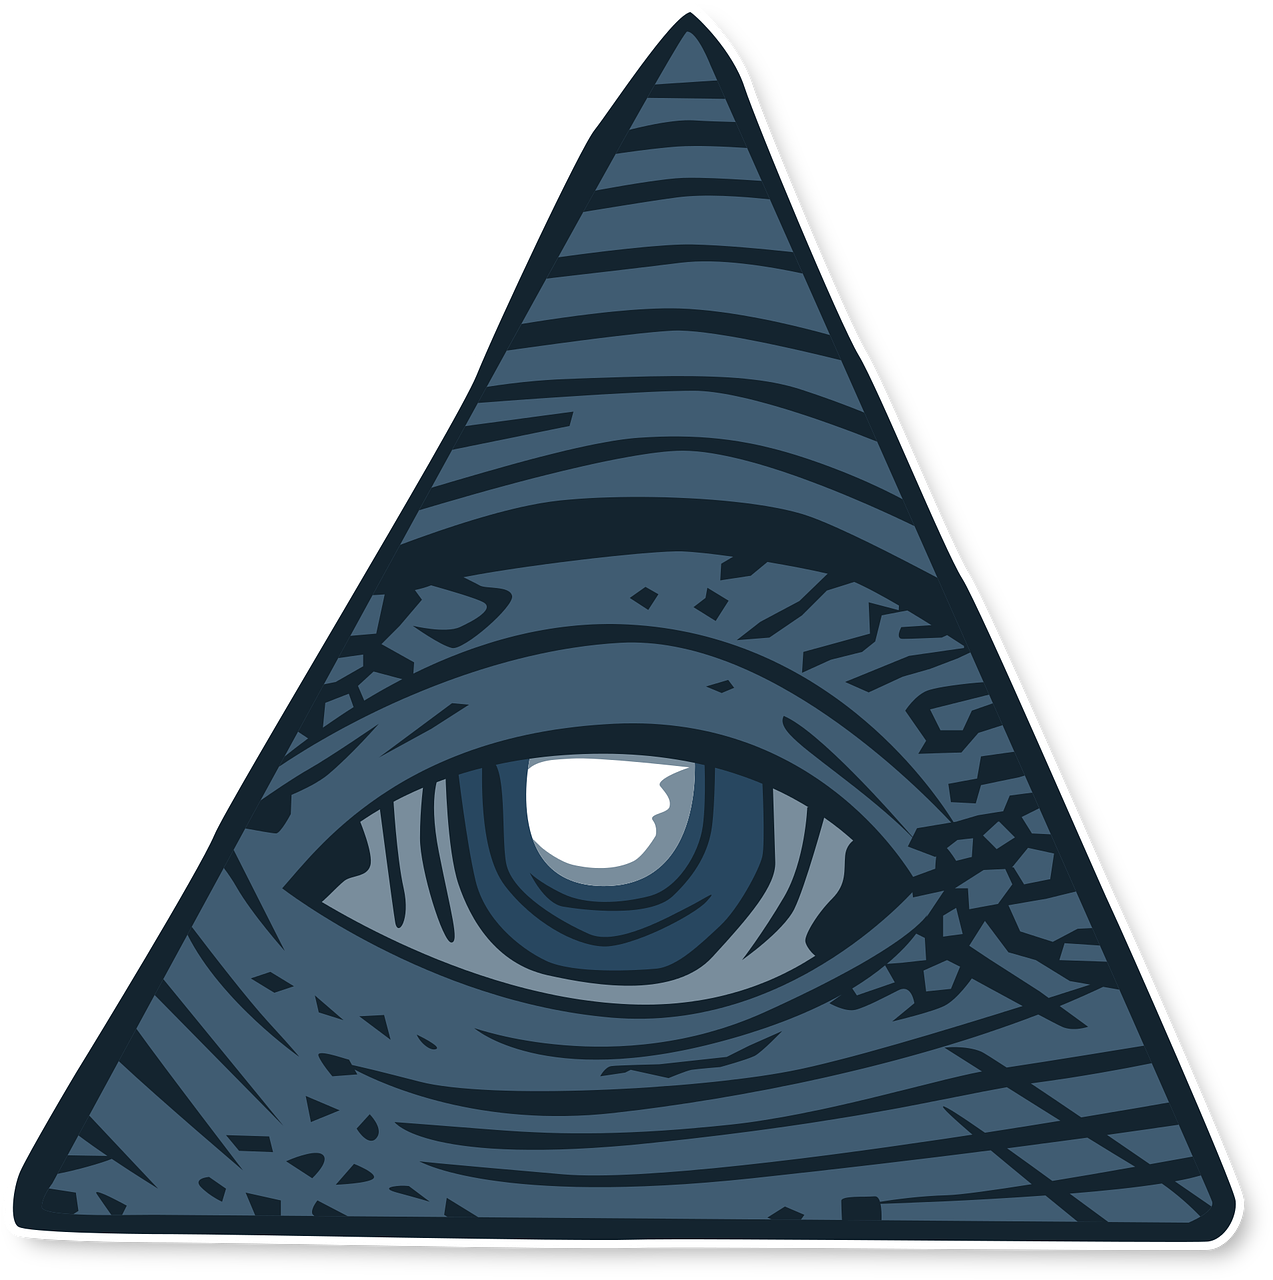 all-seeing-eye-1698551_1280